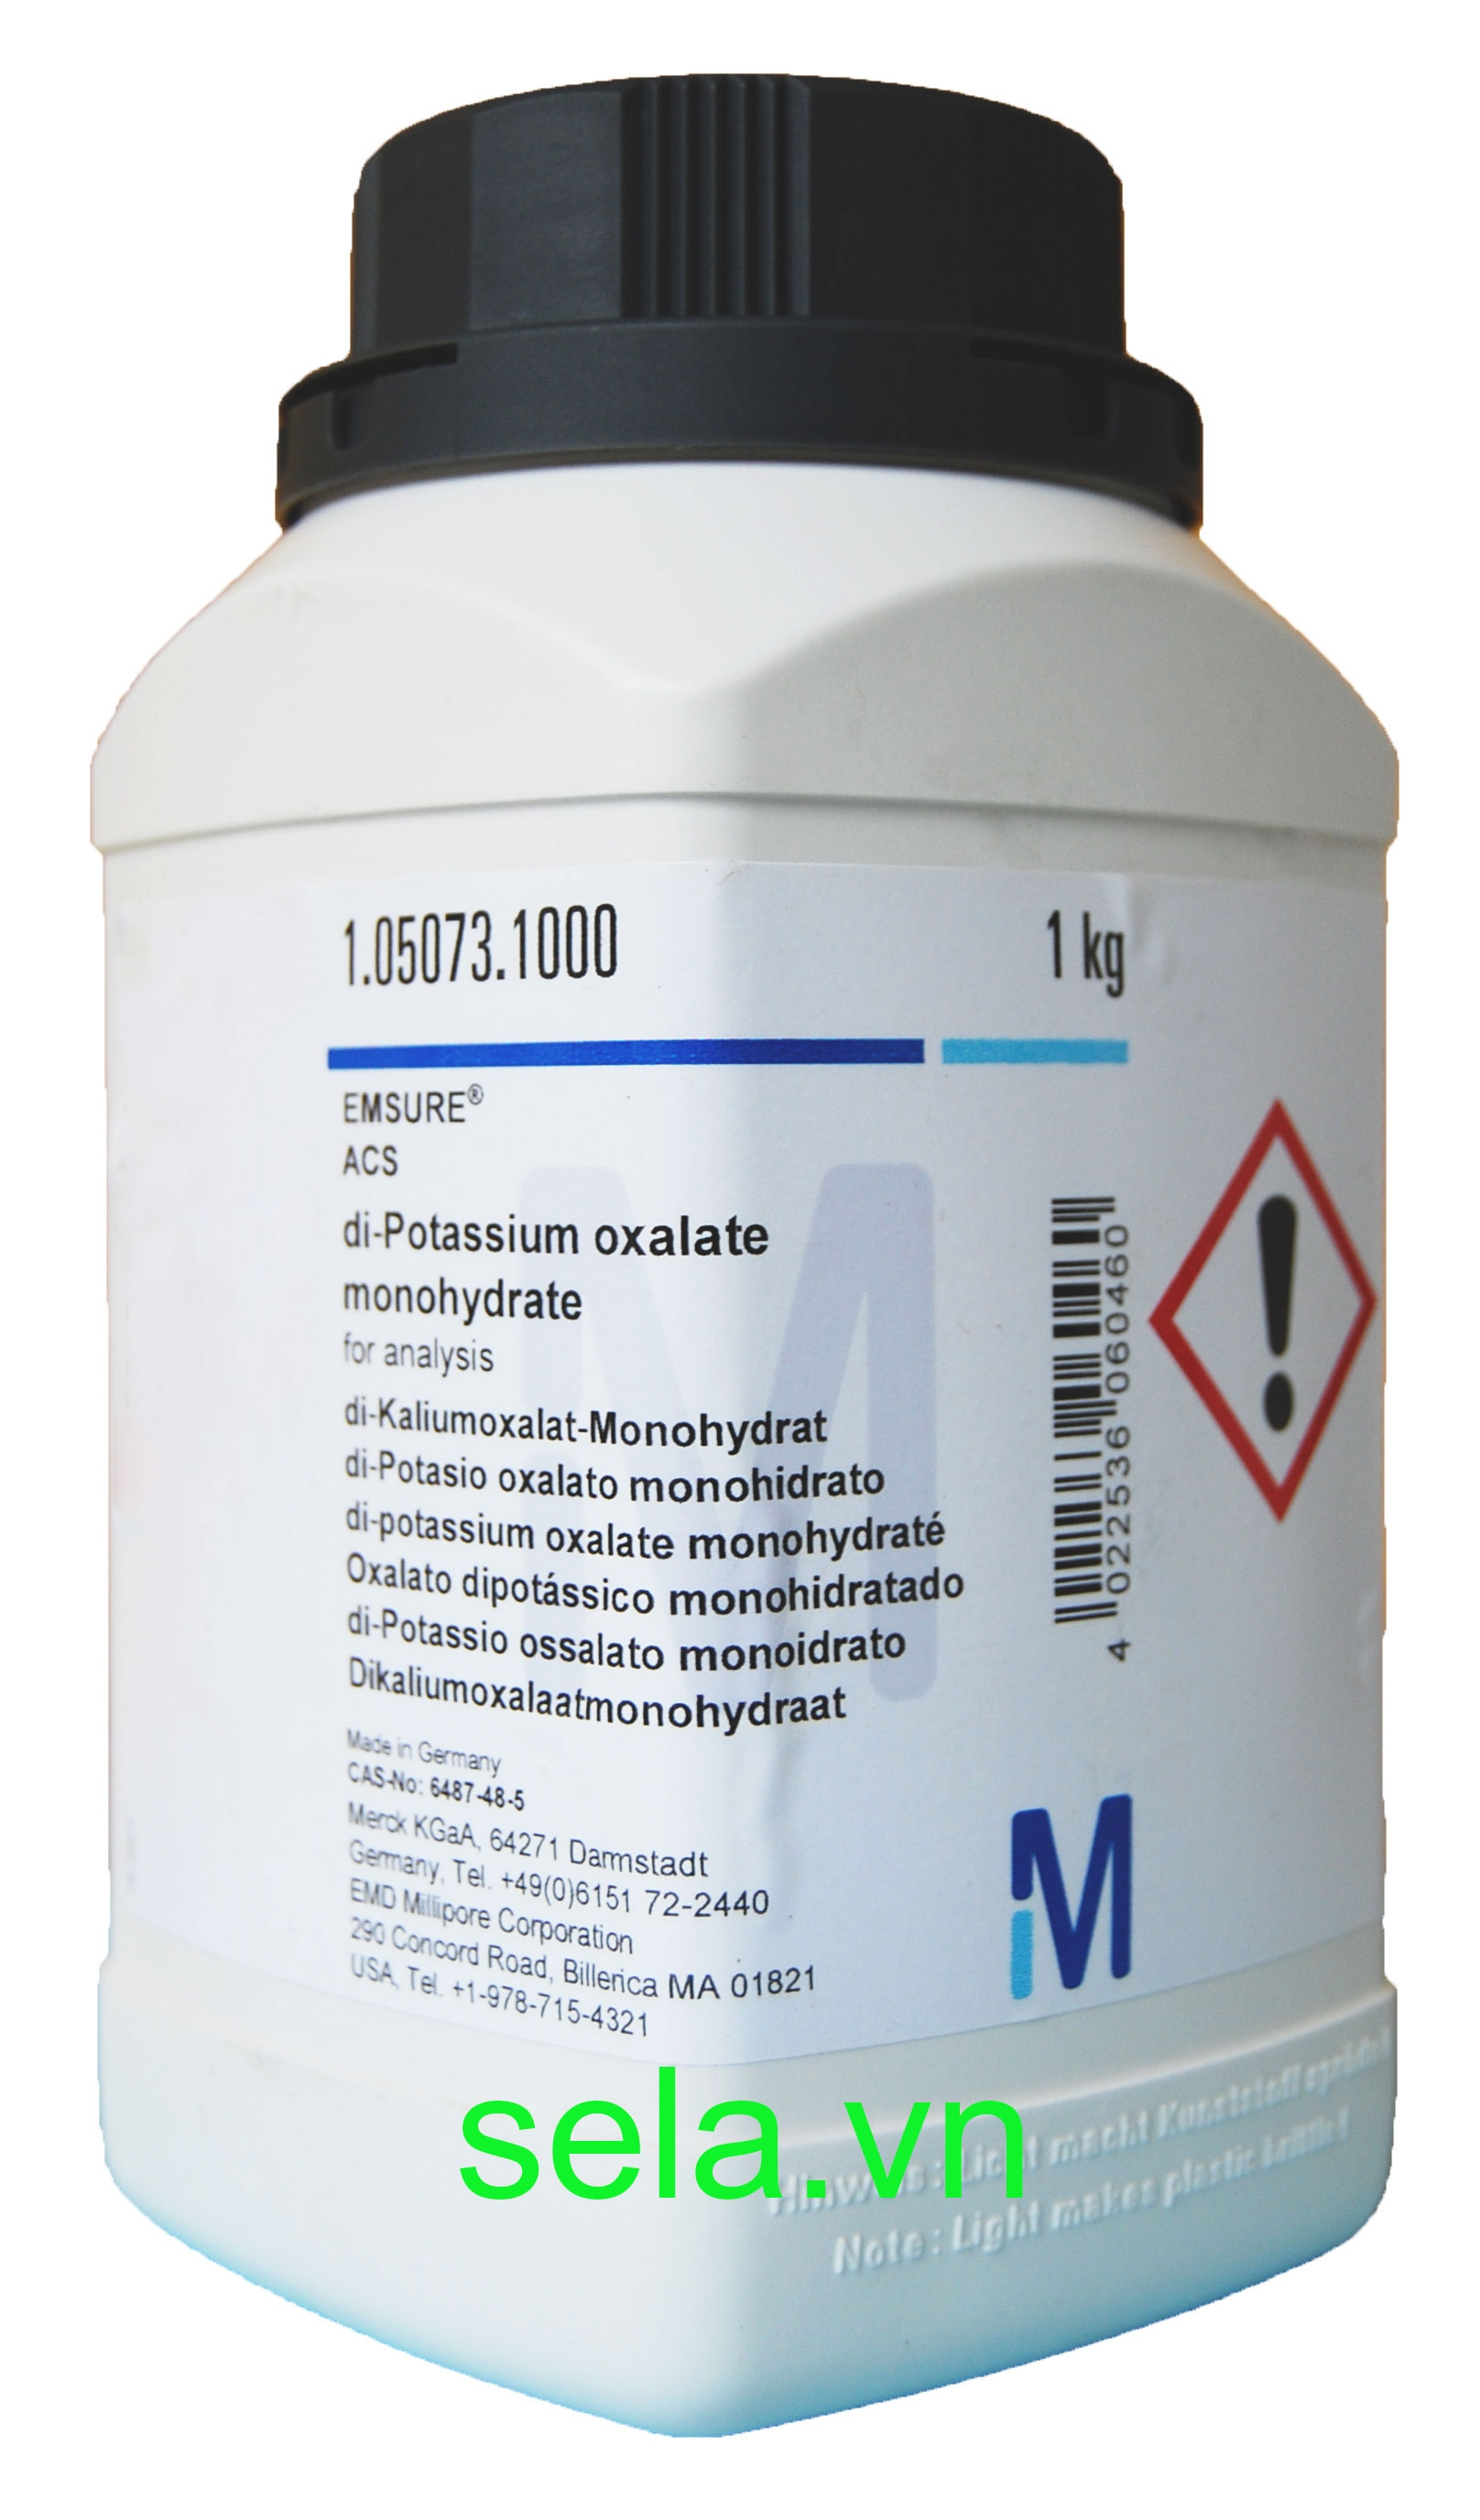 di-Potassium oxalate monohydrate for analysis EMSURE® ACS